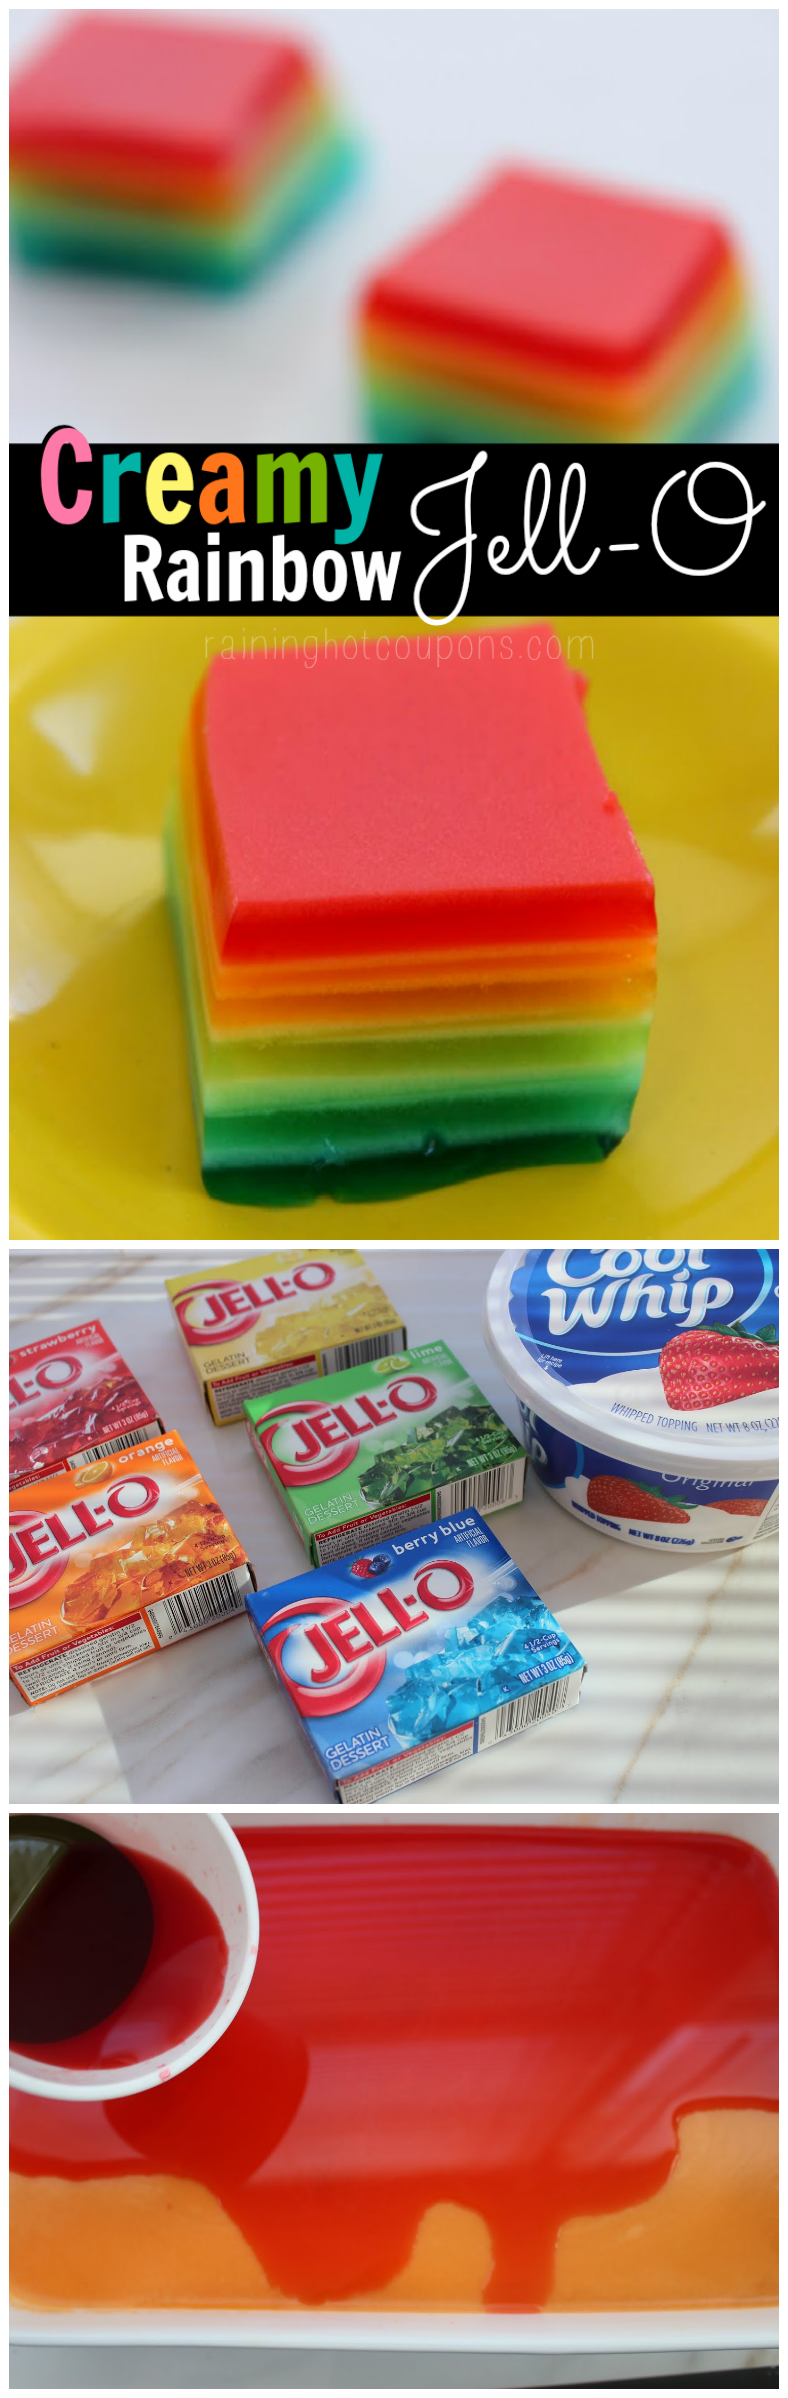 rainbow jello collage.png